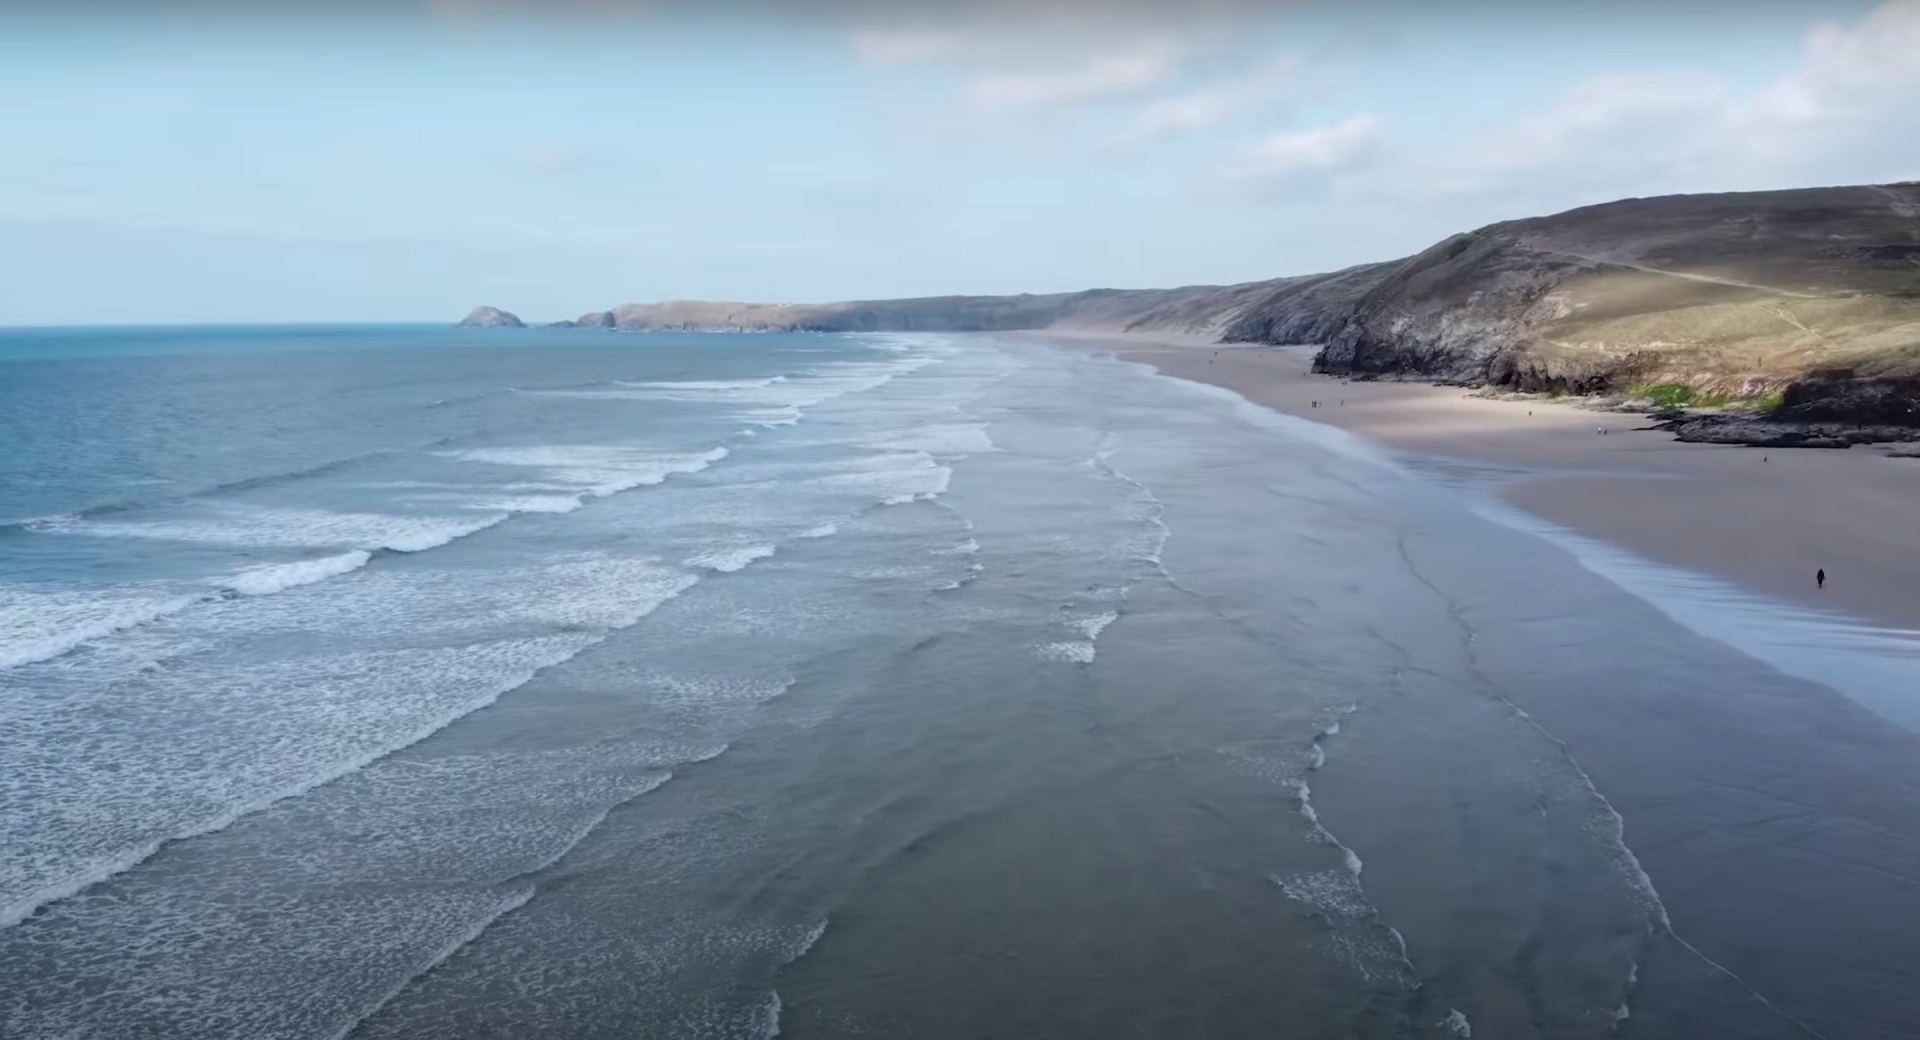 In a new video, YouTuber, Tom Scott, explores a Cornish beach in the UK where the ocean constantly burps up LEGO pieces.